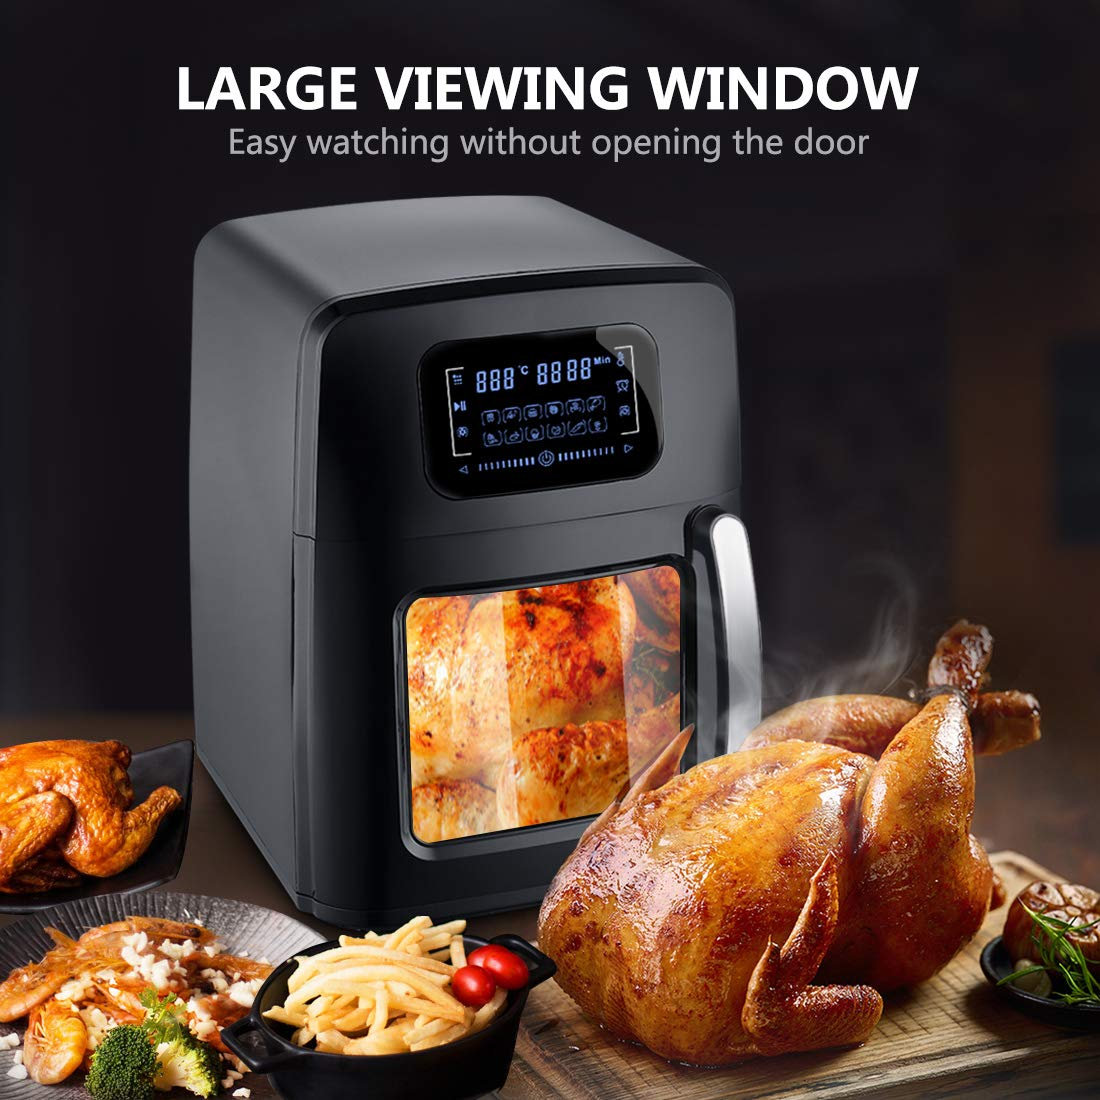 SARKI XL Fryer Viewing Window 12Qt Large Capacity, 6-Piece Programmable Air Oven with 12 Pre Settings Electric Hot Deep 6.3Qt Extra Fry Pan Inside-1700W /110V by SARKI (Image #2)